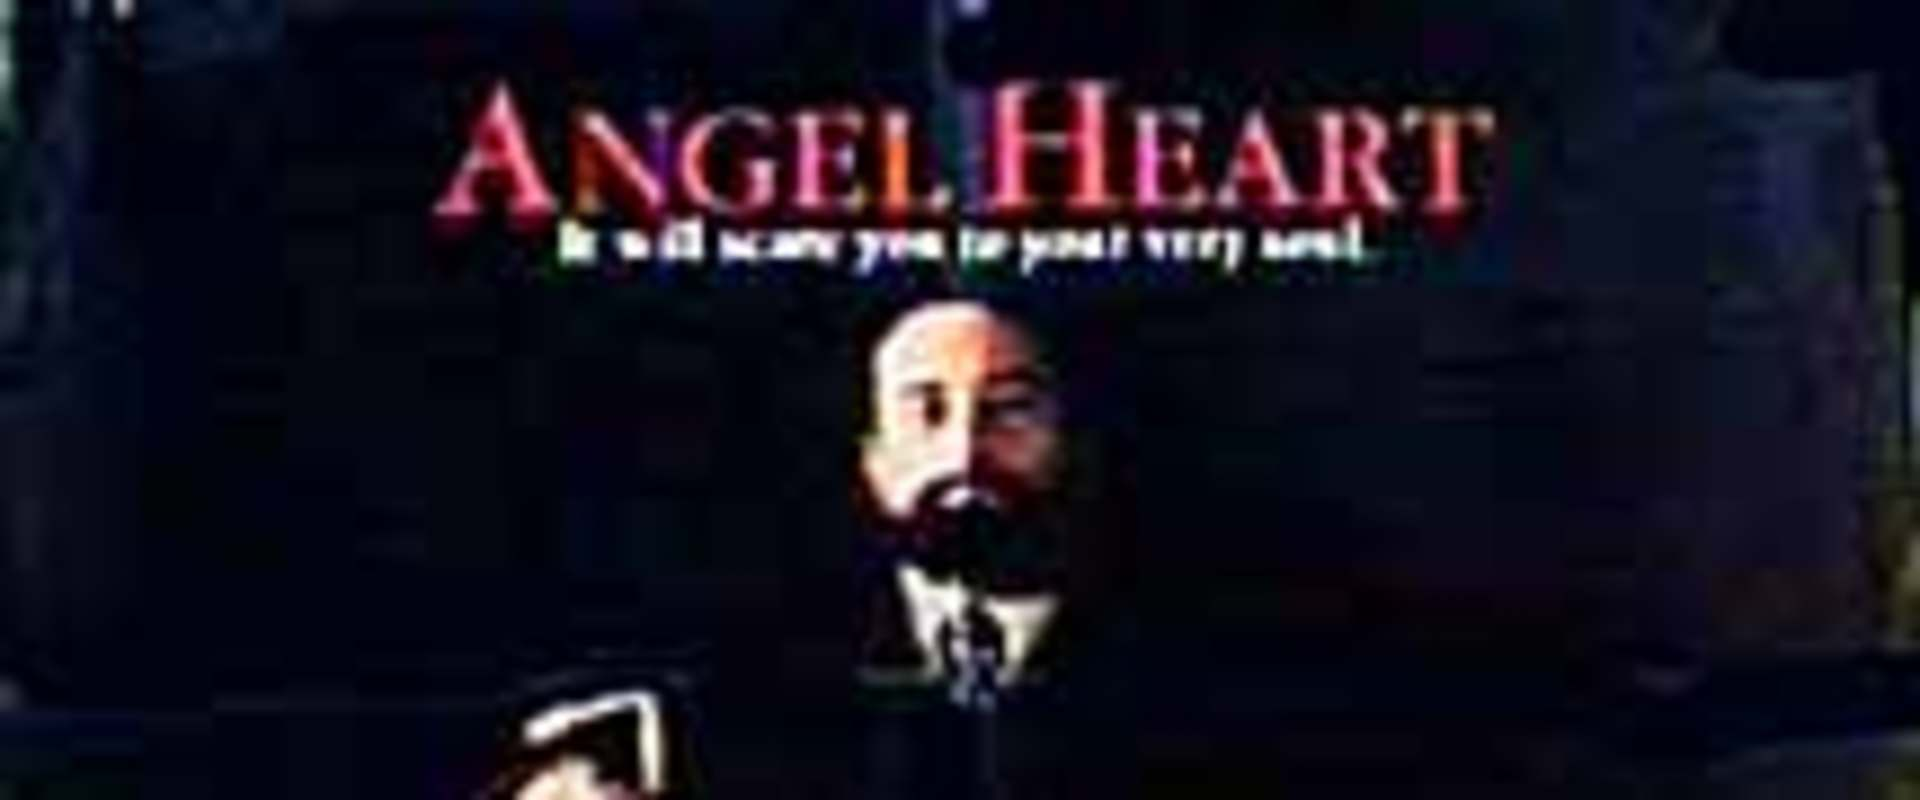 Angel Heart background 1